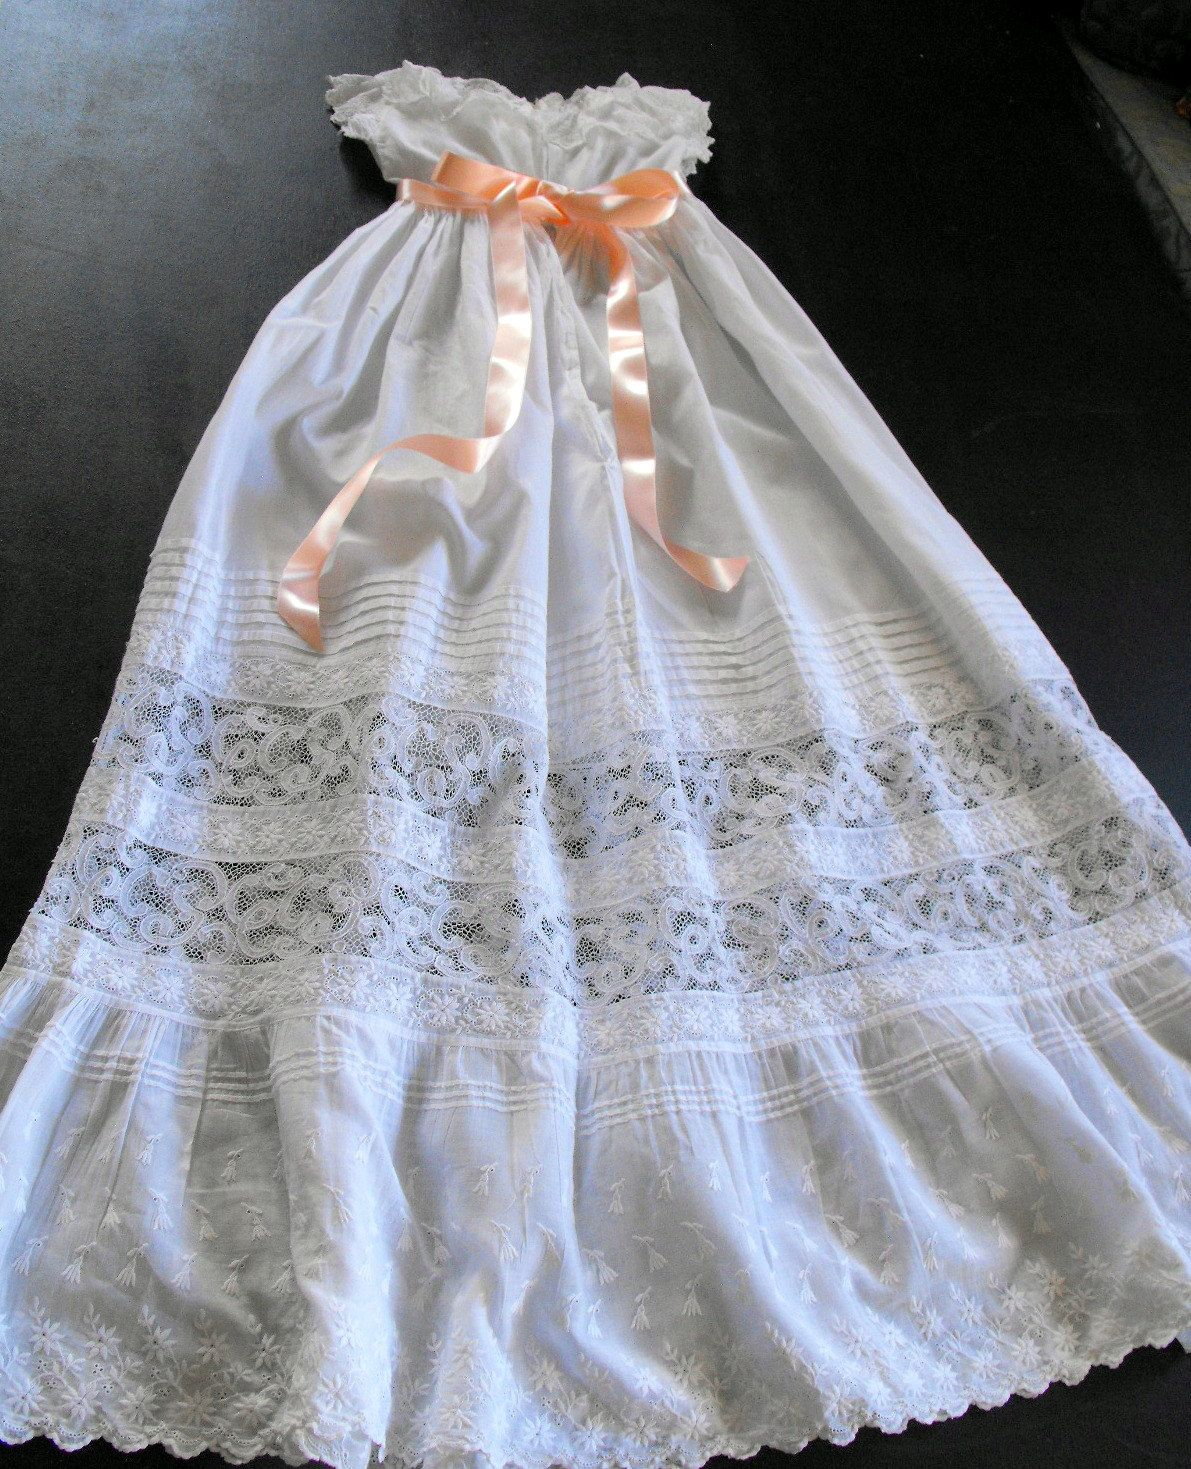 Vintage Victorian Christening Gown English with Embroidery, Ruffles and Lace. $175.00, via Etsy.